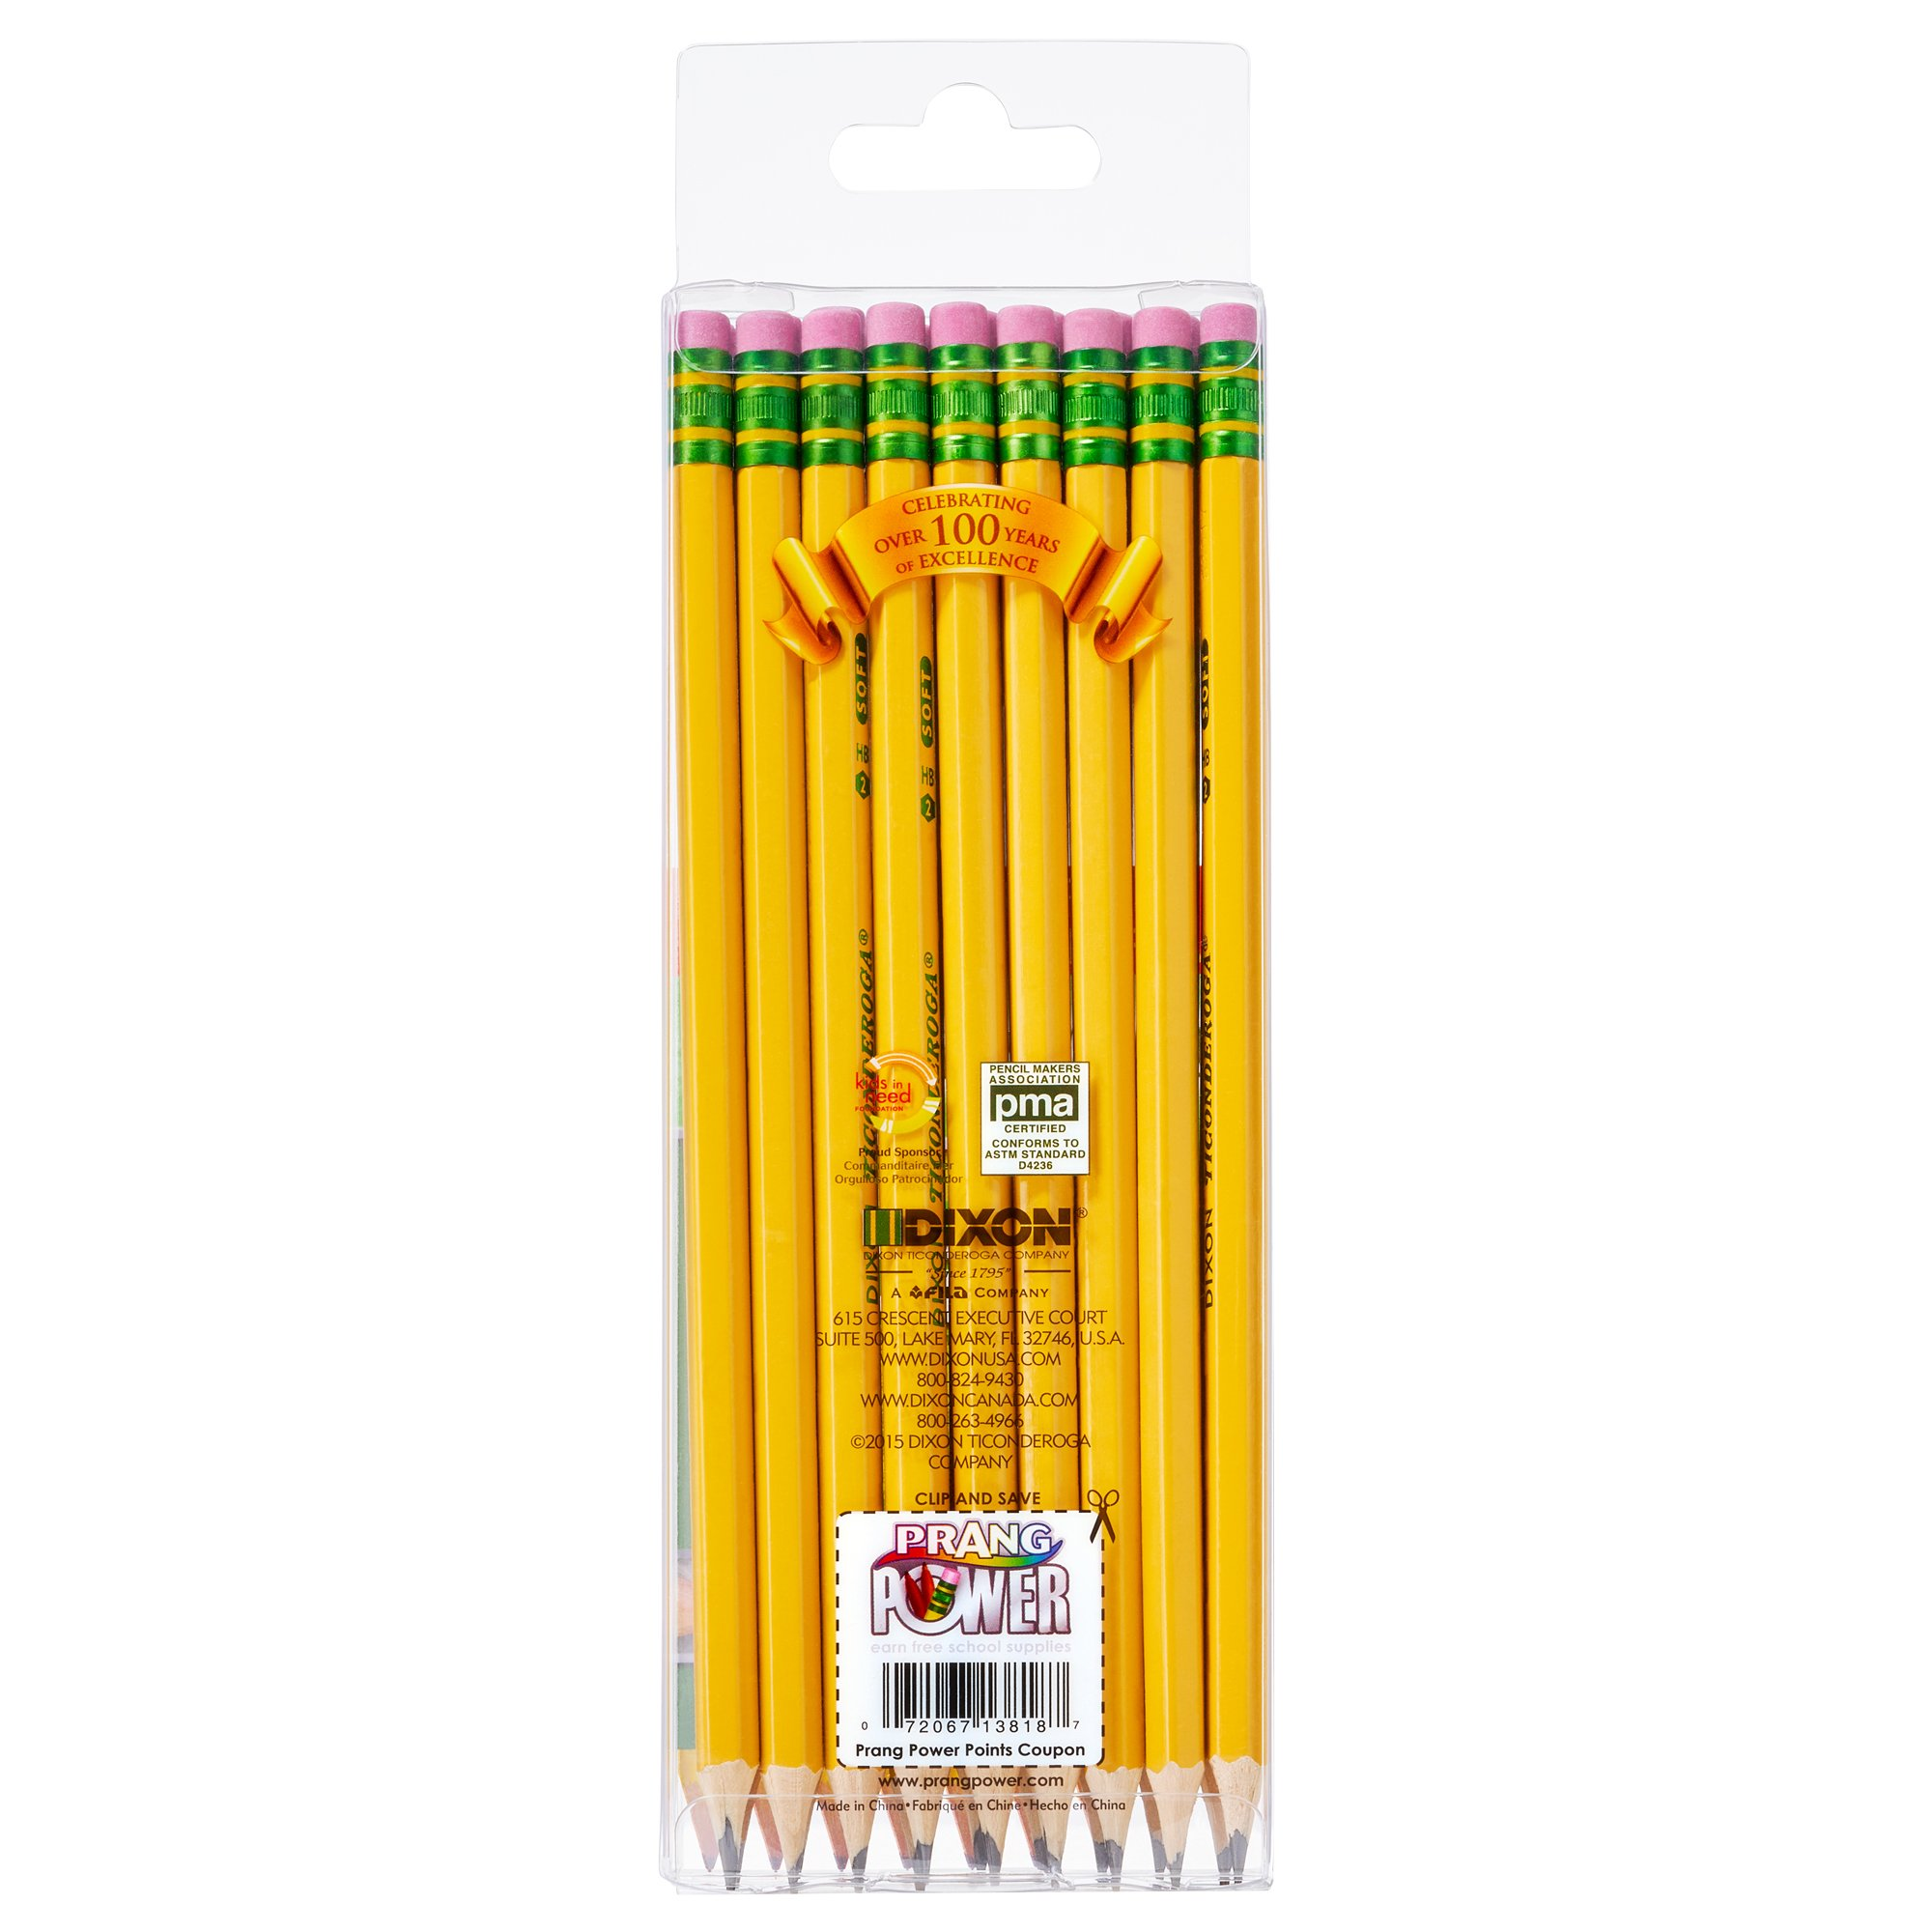 Ticonderoga Wood-Cased Graphite Pencils, #2 HB Soft, Pre-Sharpened, Yellow, 18 Count (13818) by Dixon (Image #3)